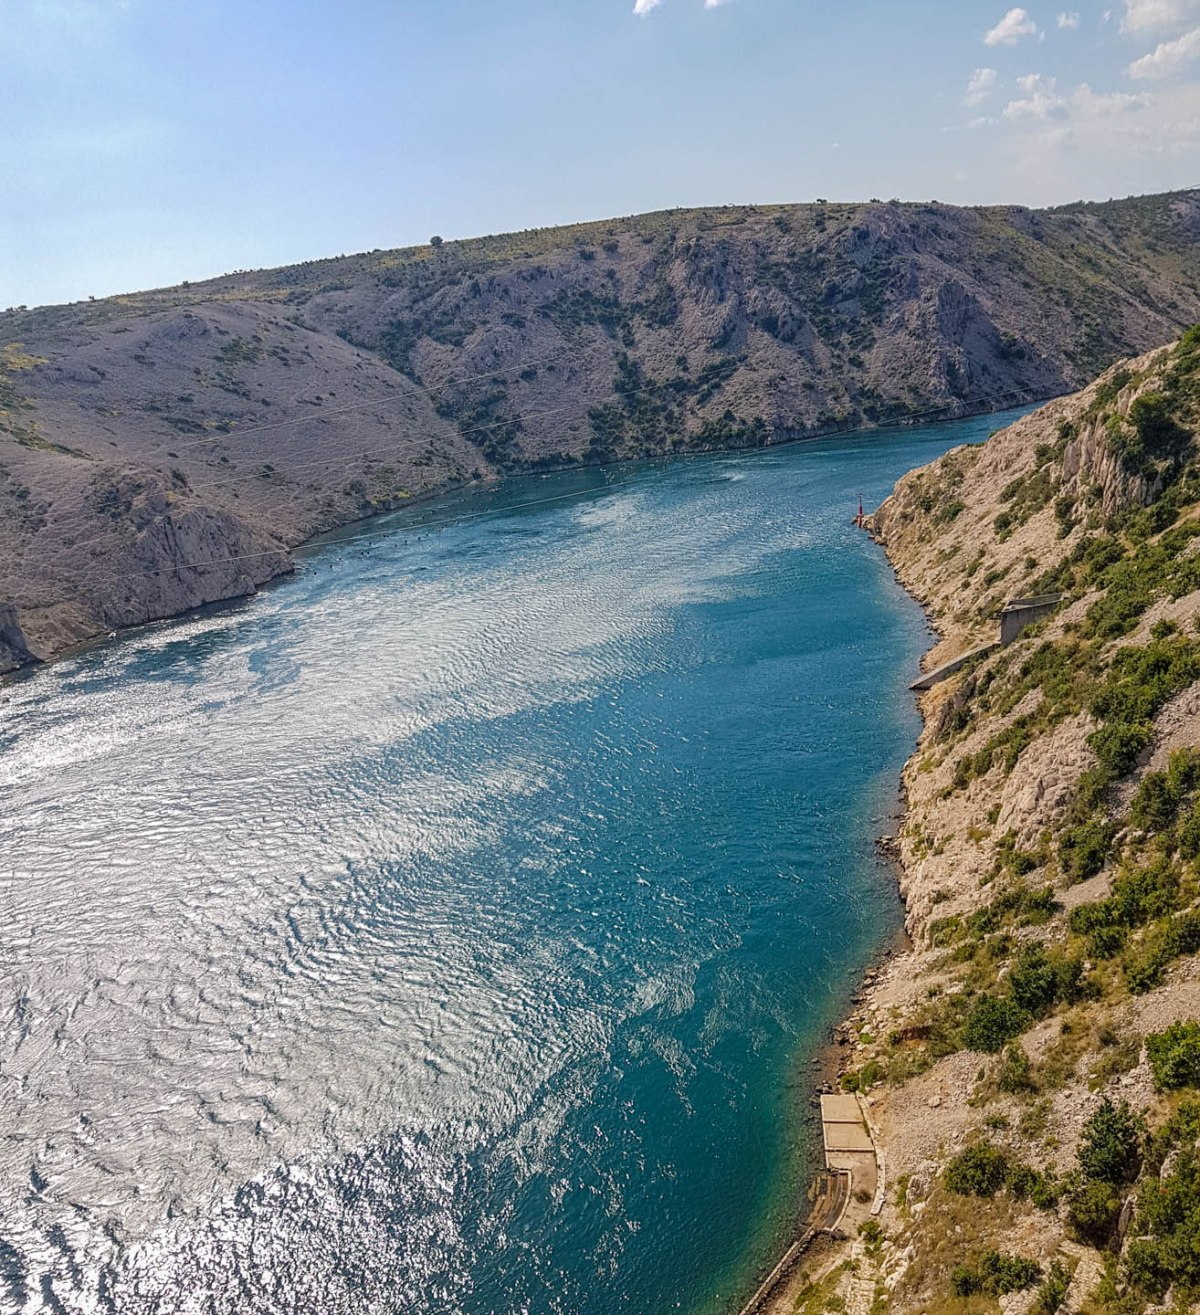 The view opposite from Bungee Jumping platform looking on crystal clear Adriatic sea